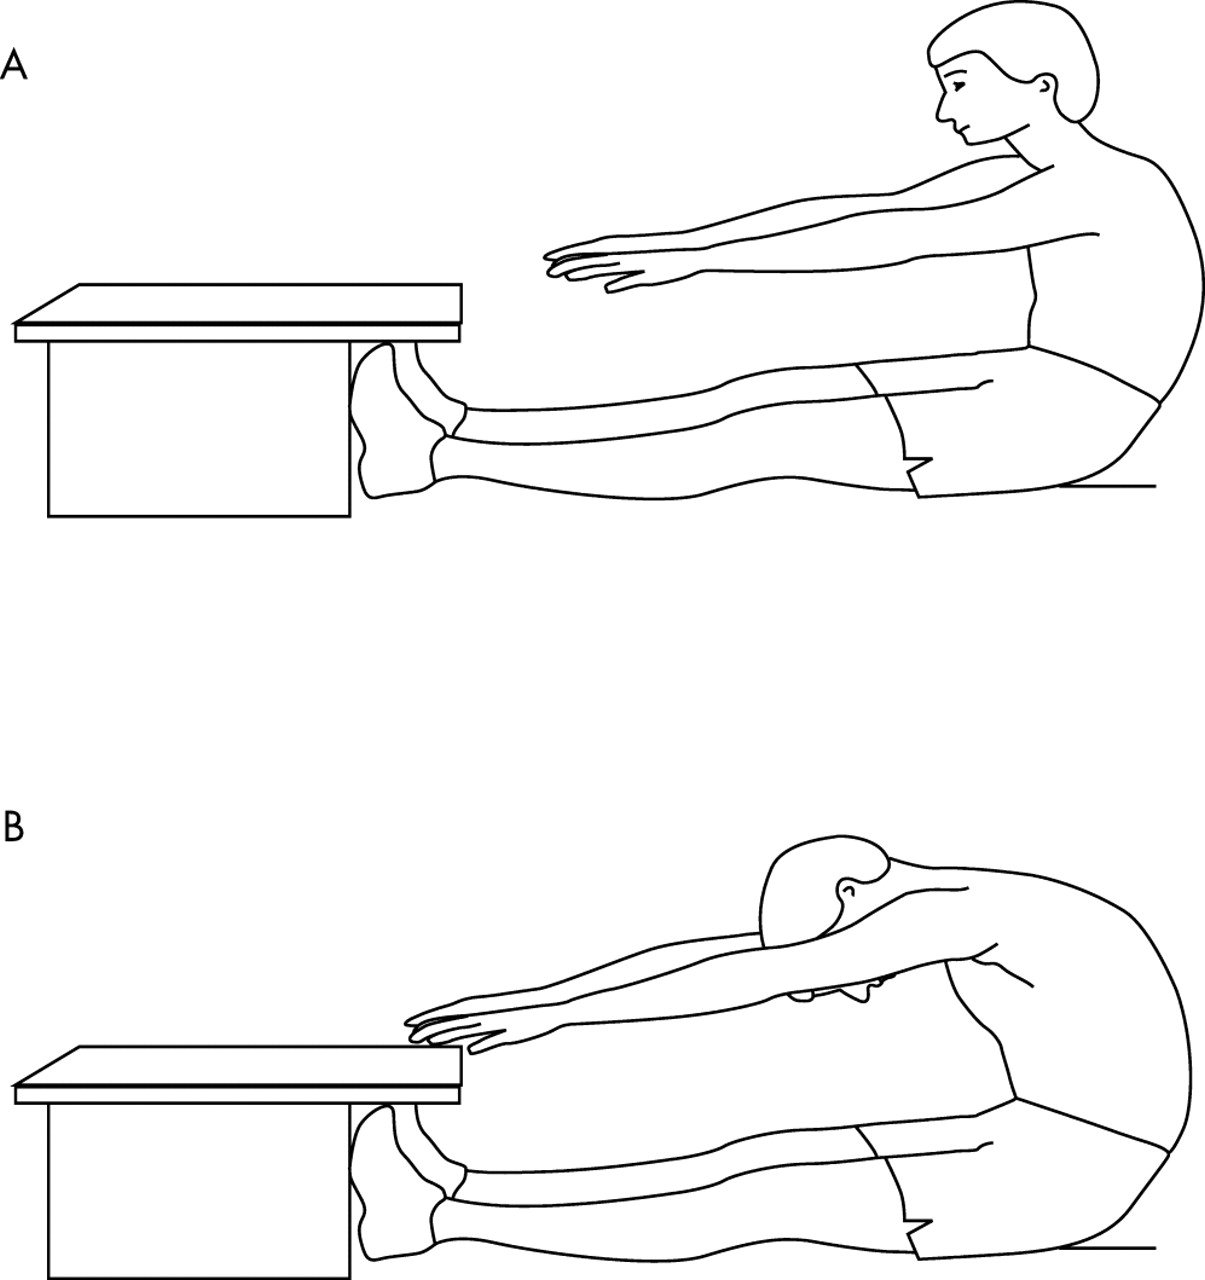 Effect Of Massage Of The Hamstring Muscle Group On Performance Of The Sit And Reach Test